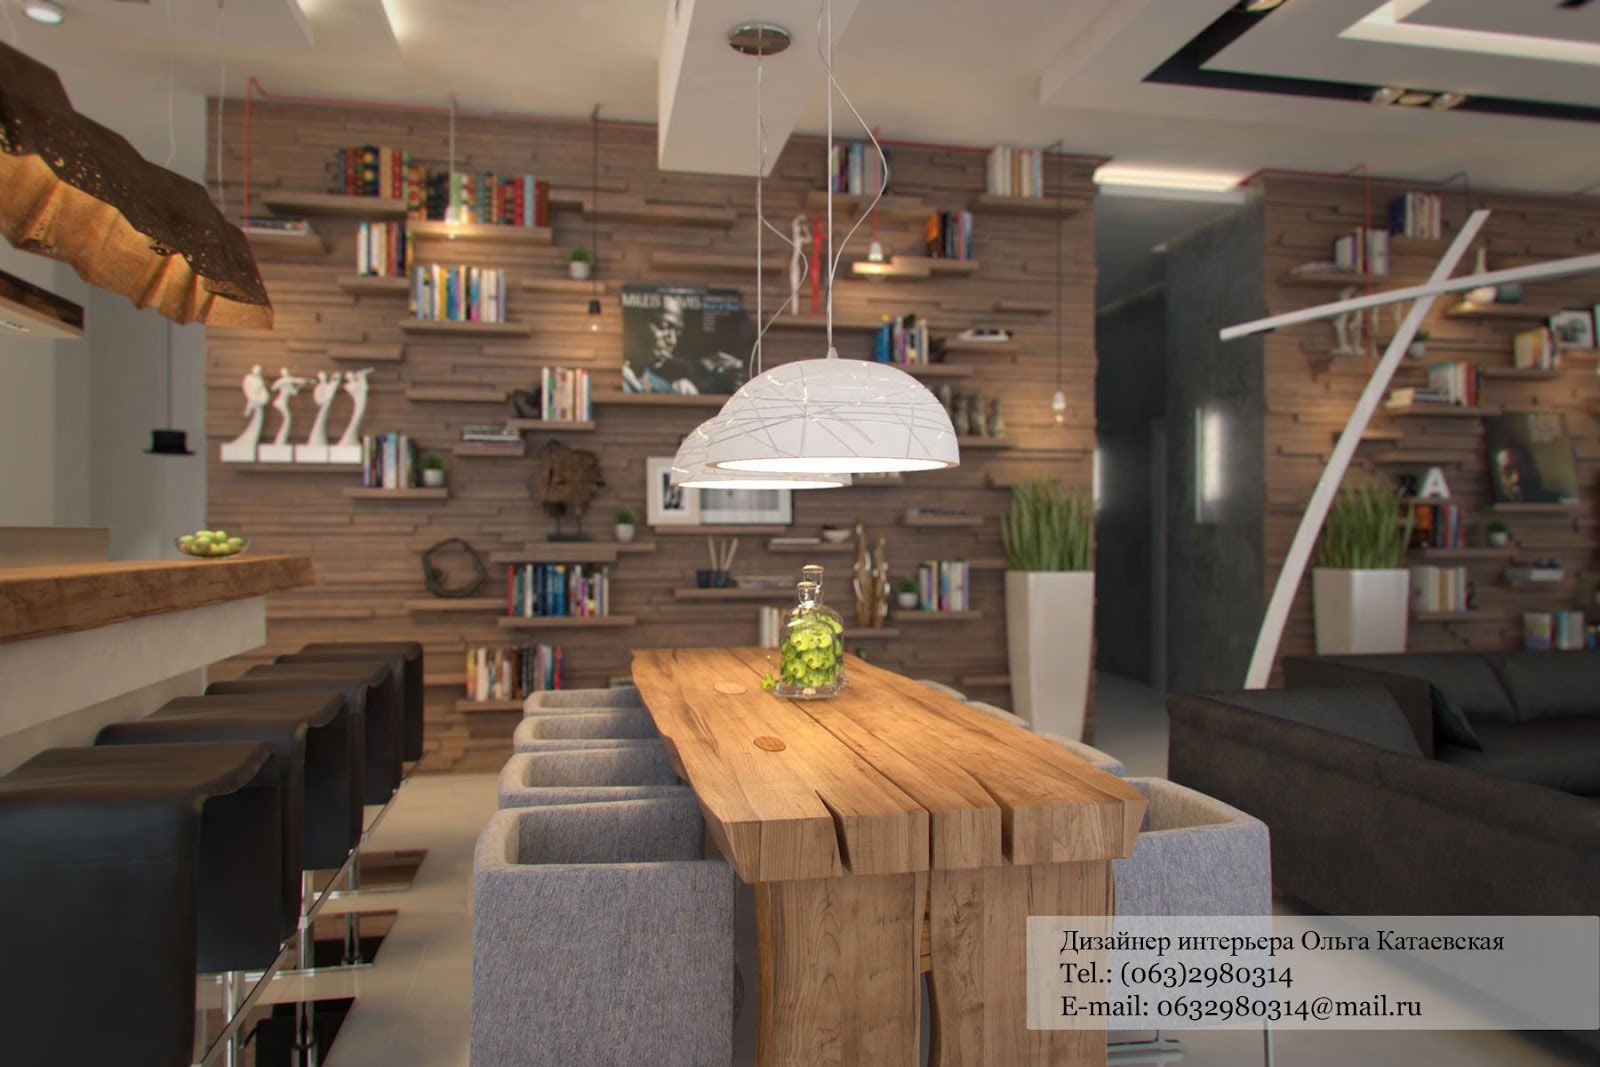 Small Modern Rustic Studio Apartment Interior Lighting